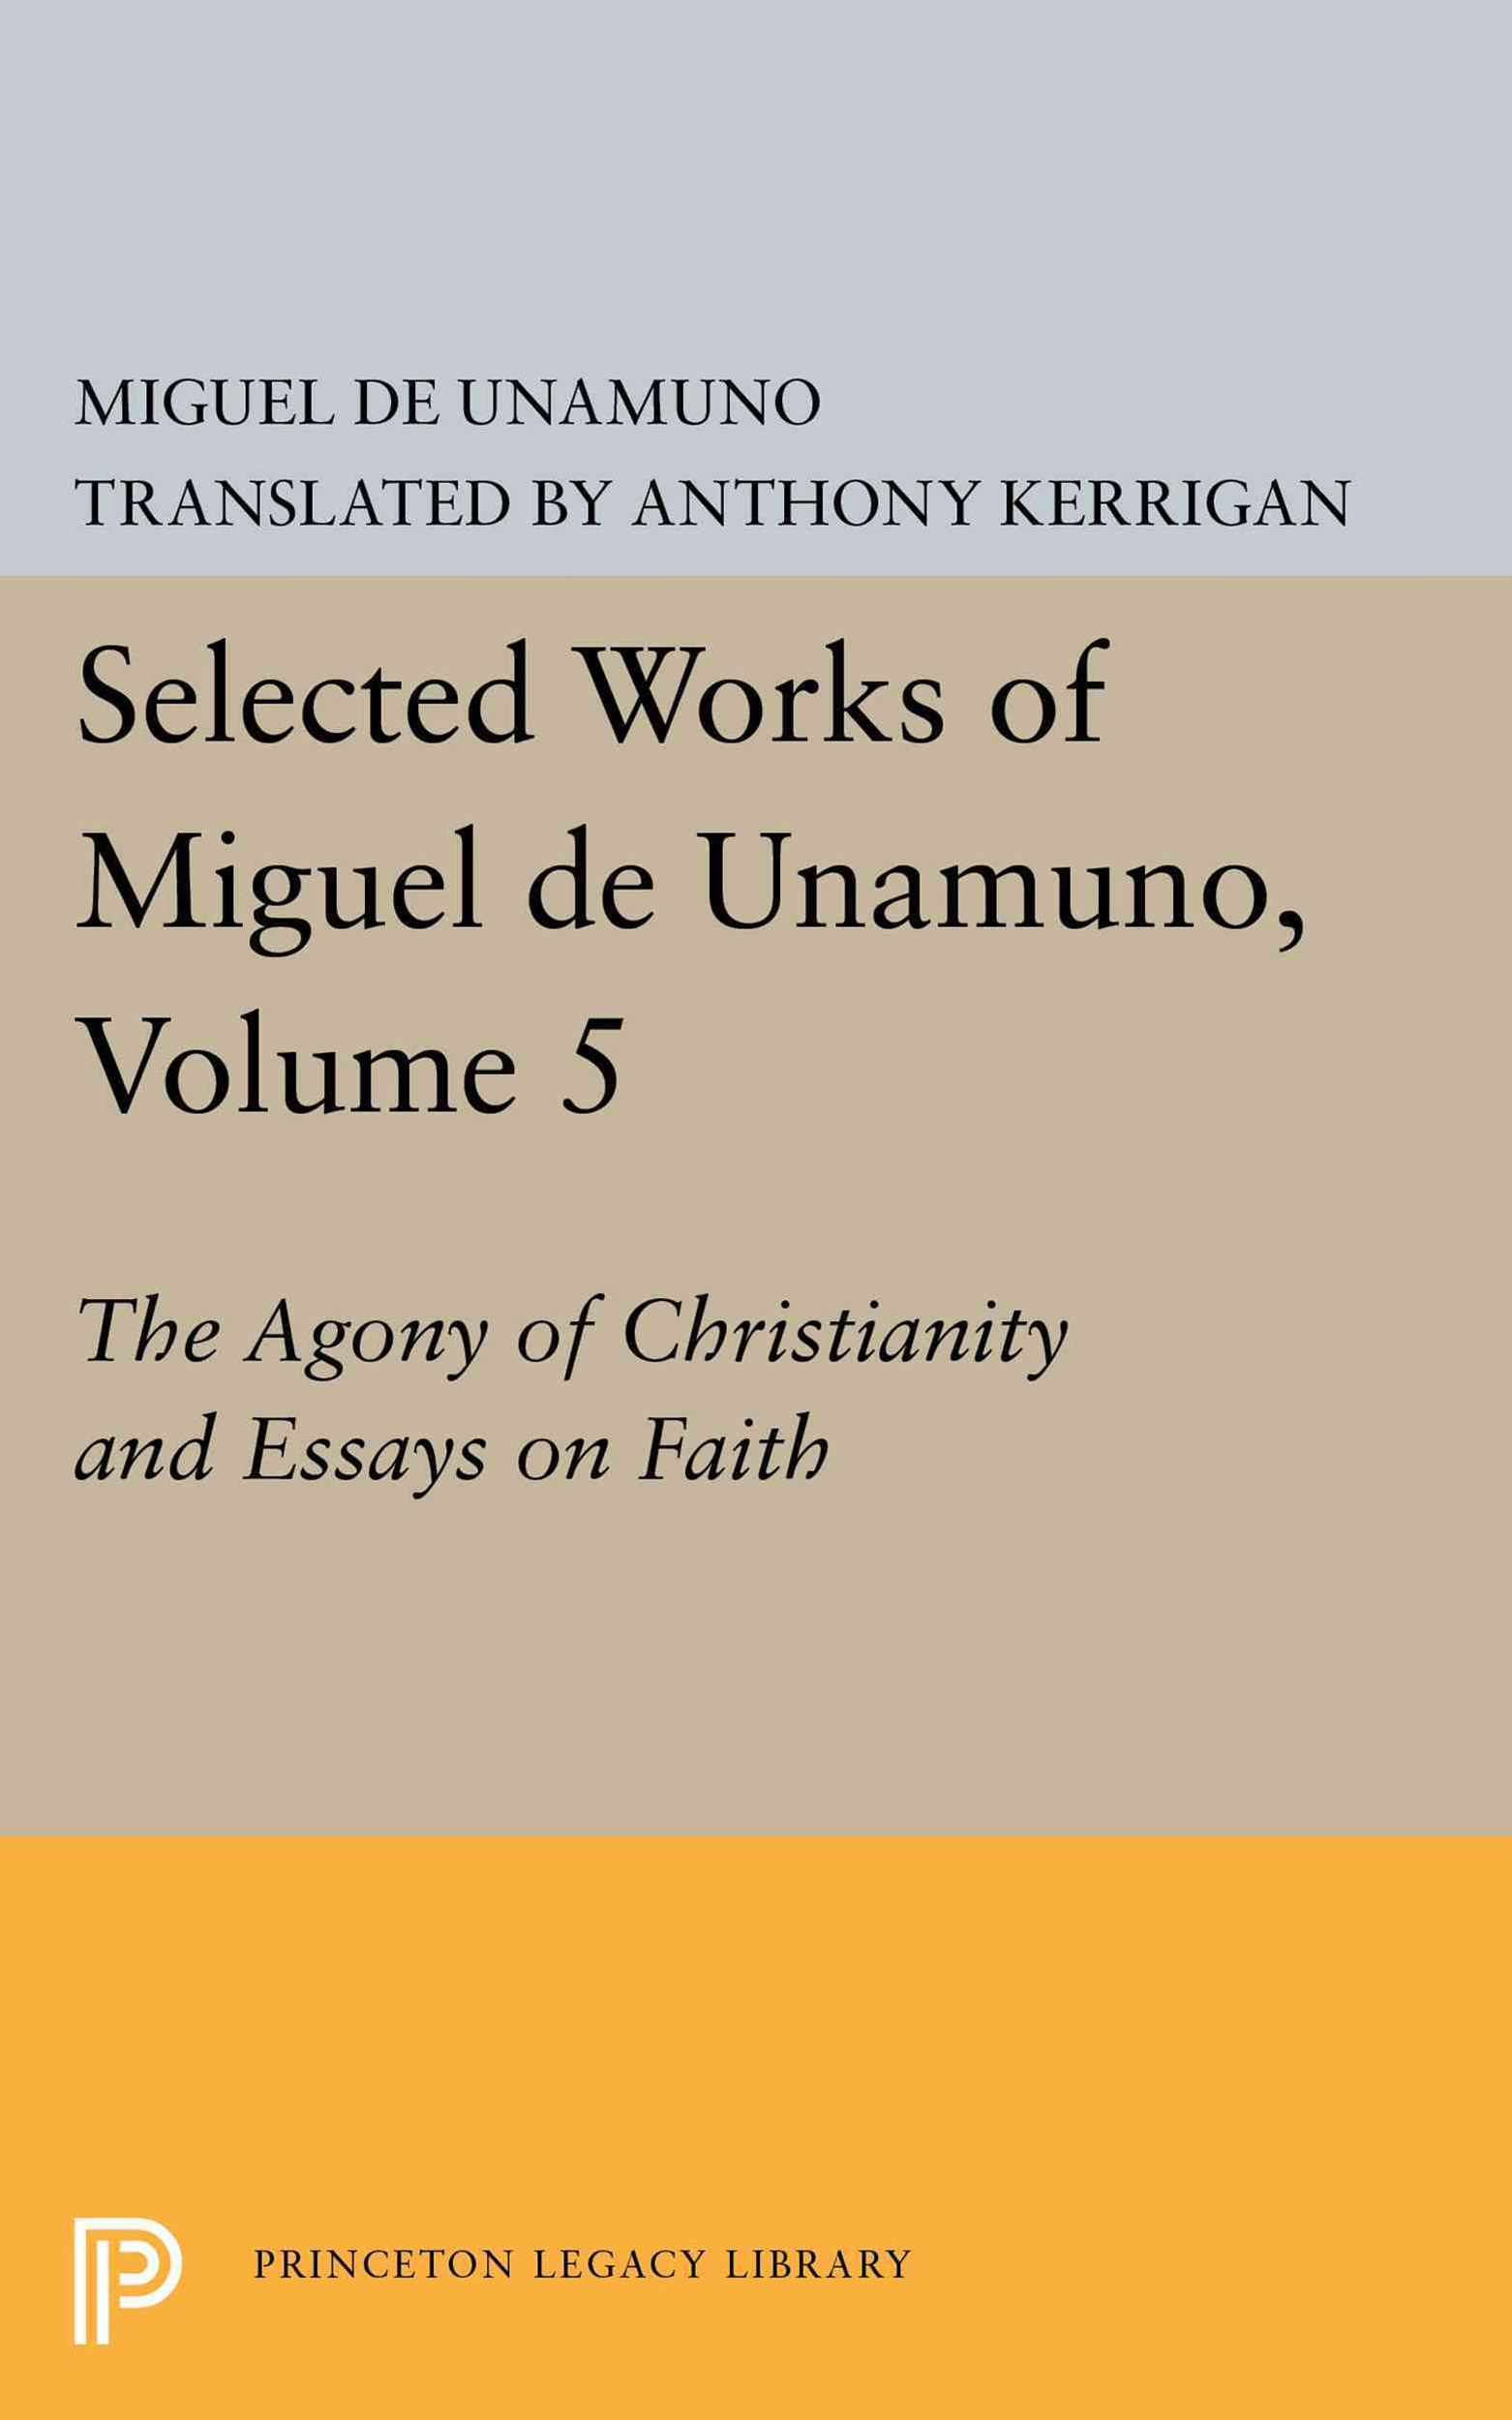 Selected Works of Miguel de Unamuno, Volume 5: the Agony of Christianity and Essays on Faith